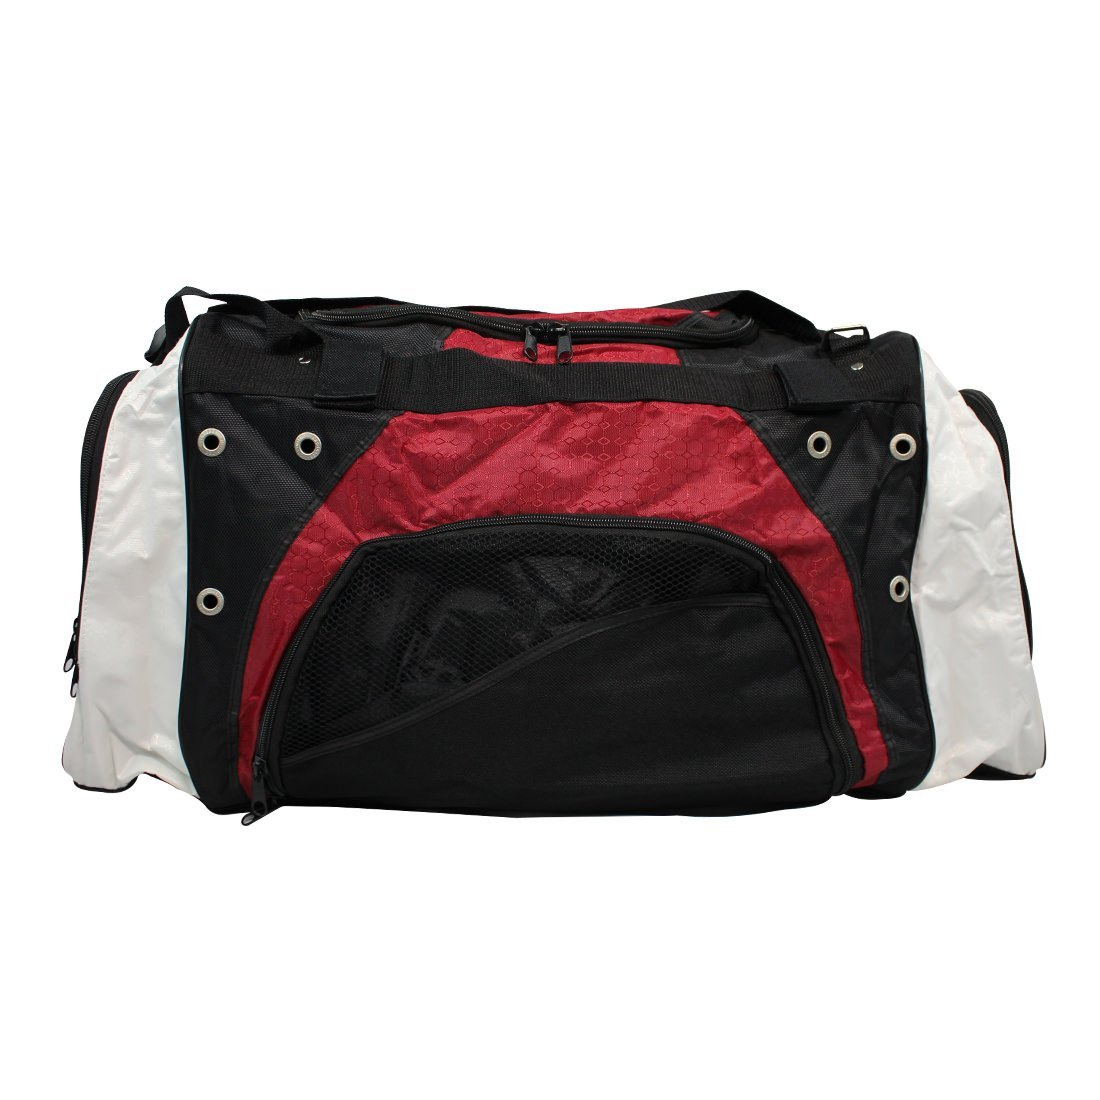 Lacrosse Unlimited Recon Duffle Bag - Red